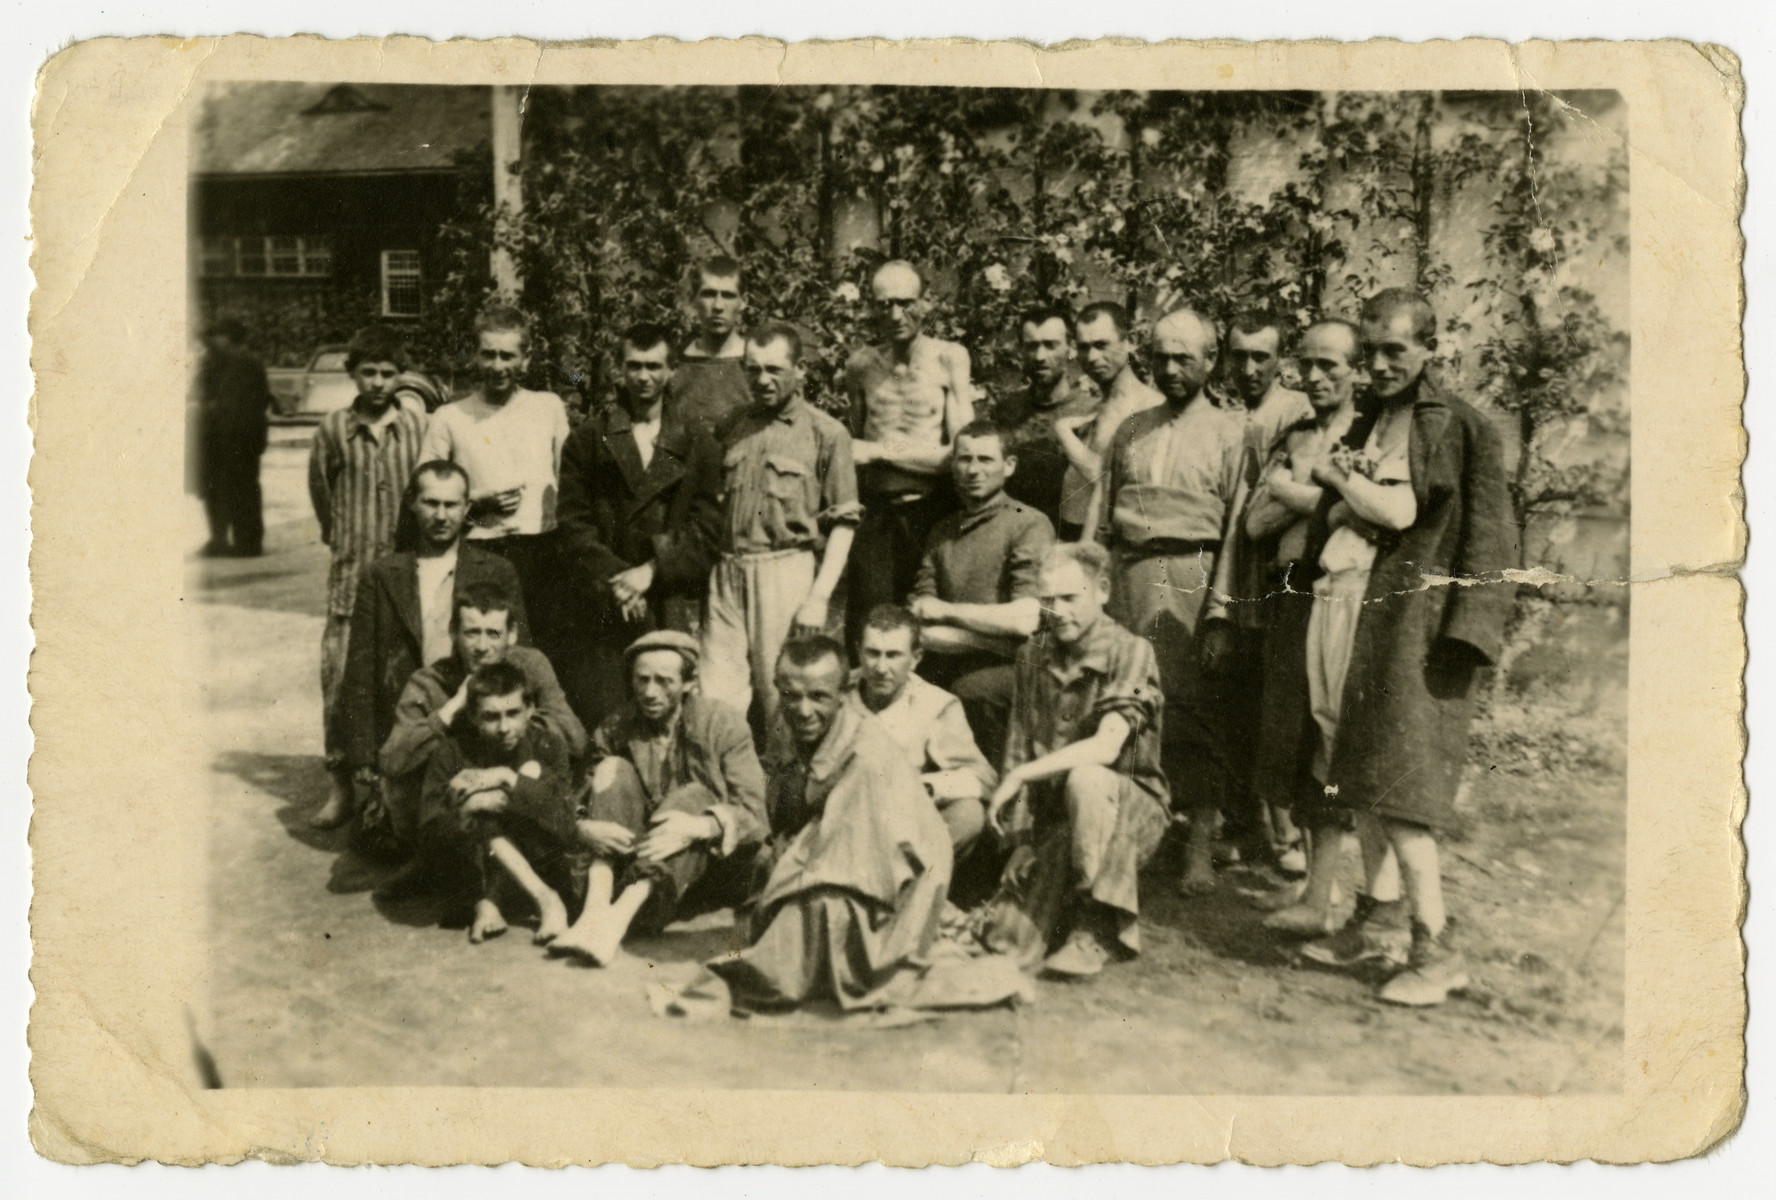 Group portrait of survivors [probably in the Dachau concentration camp.]